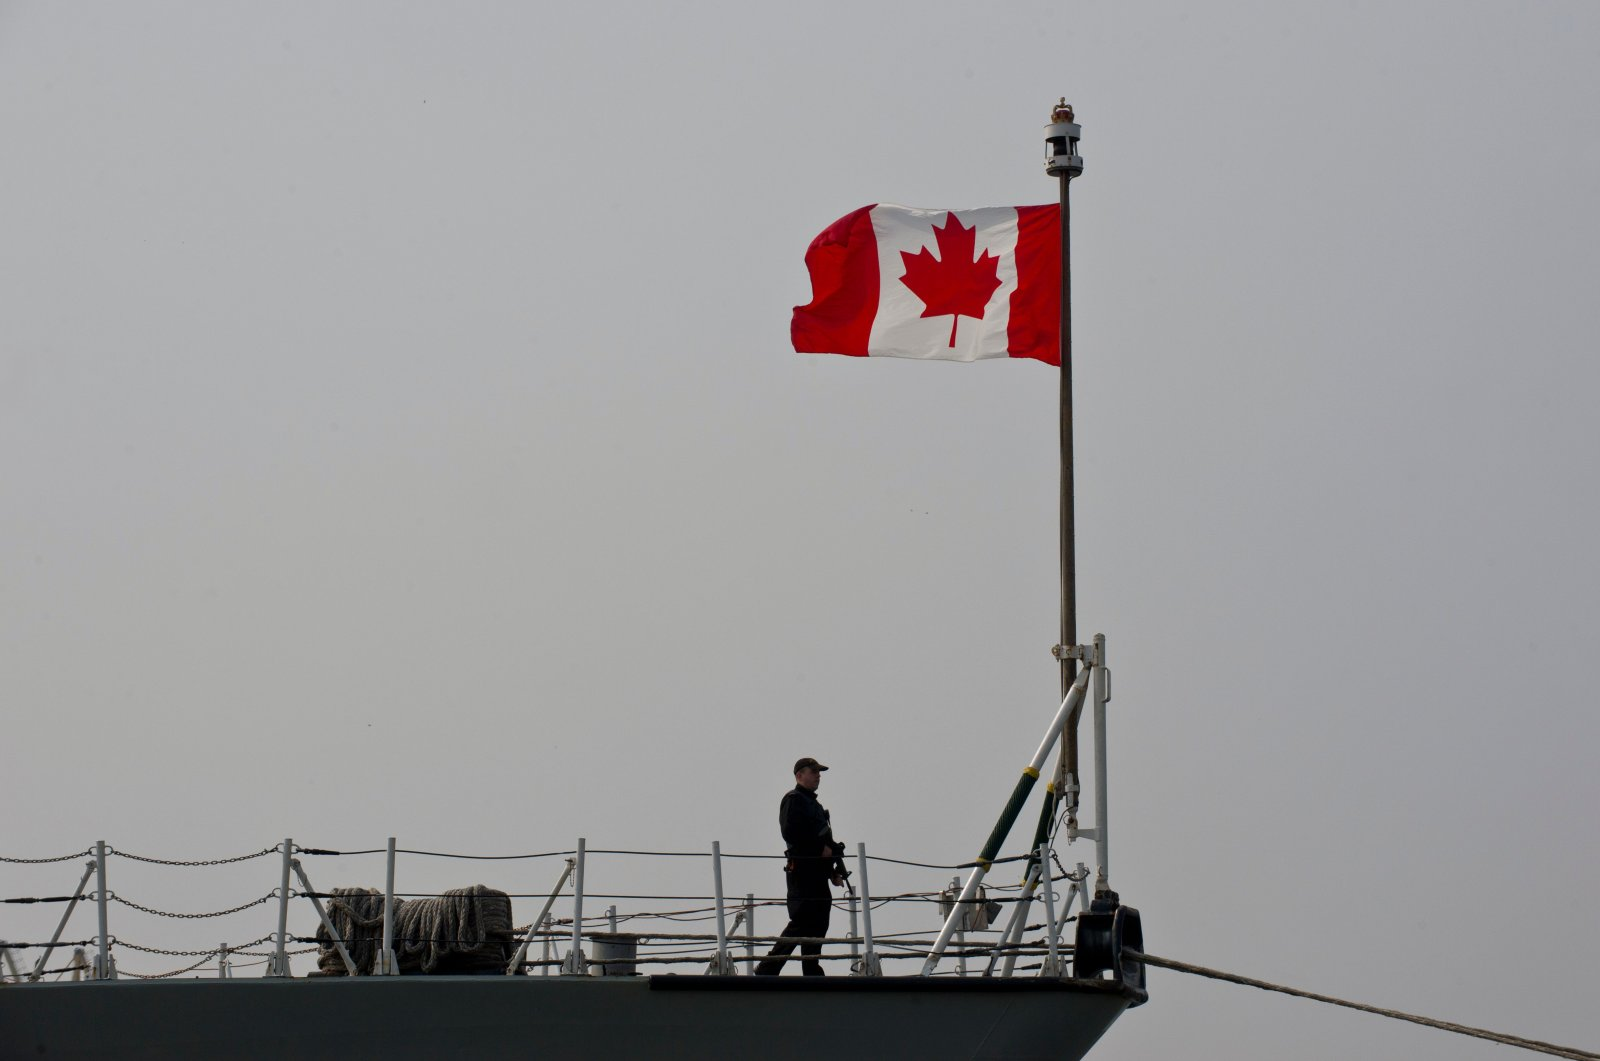 Canadian soldier stands on board frigate HMCS Fredericton docked at Constanta Harbour in Constanta, Romania, on March 13, 2015. (AFP Photo)